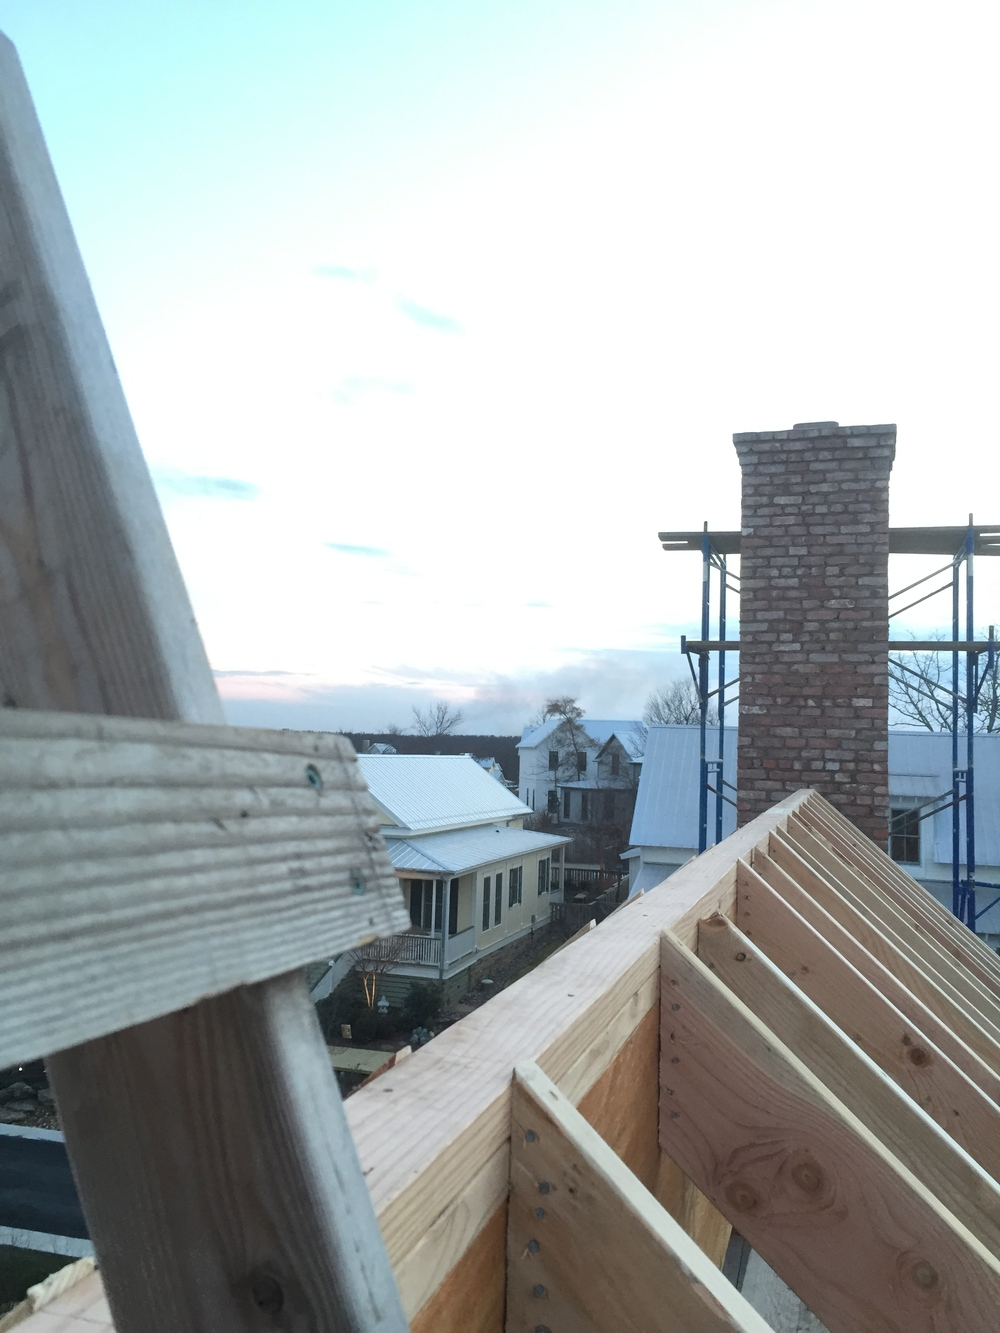 structural masonry, ridge-line perspective of solid brick chimney